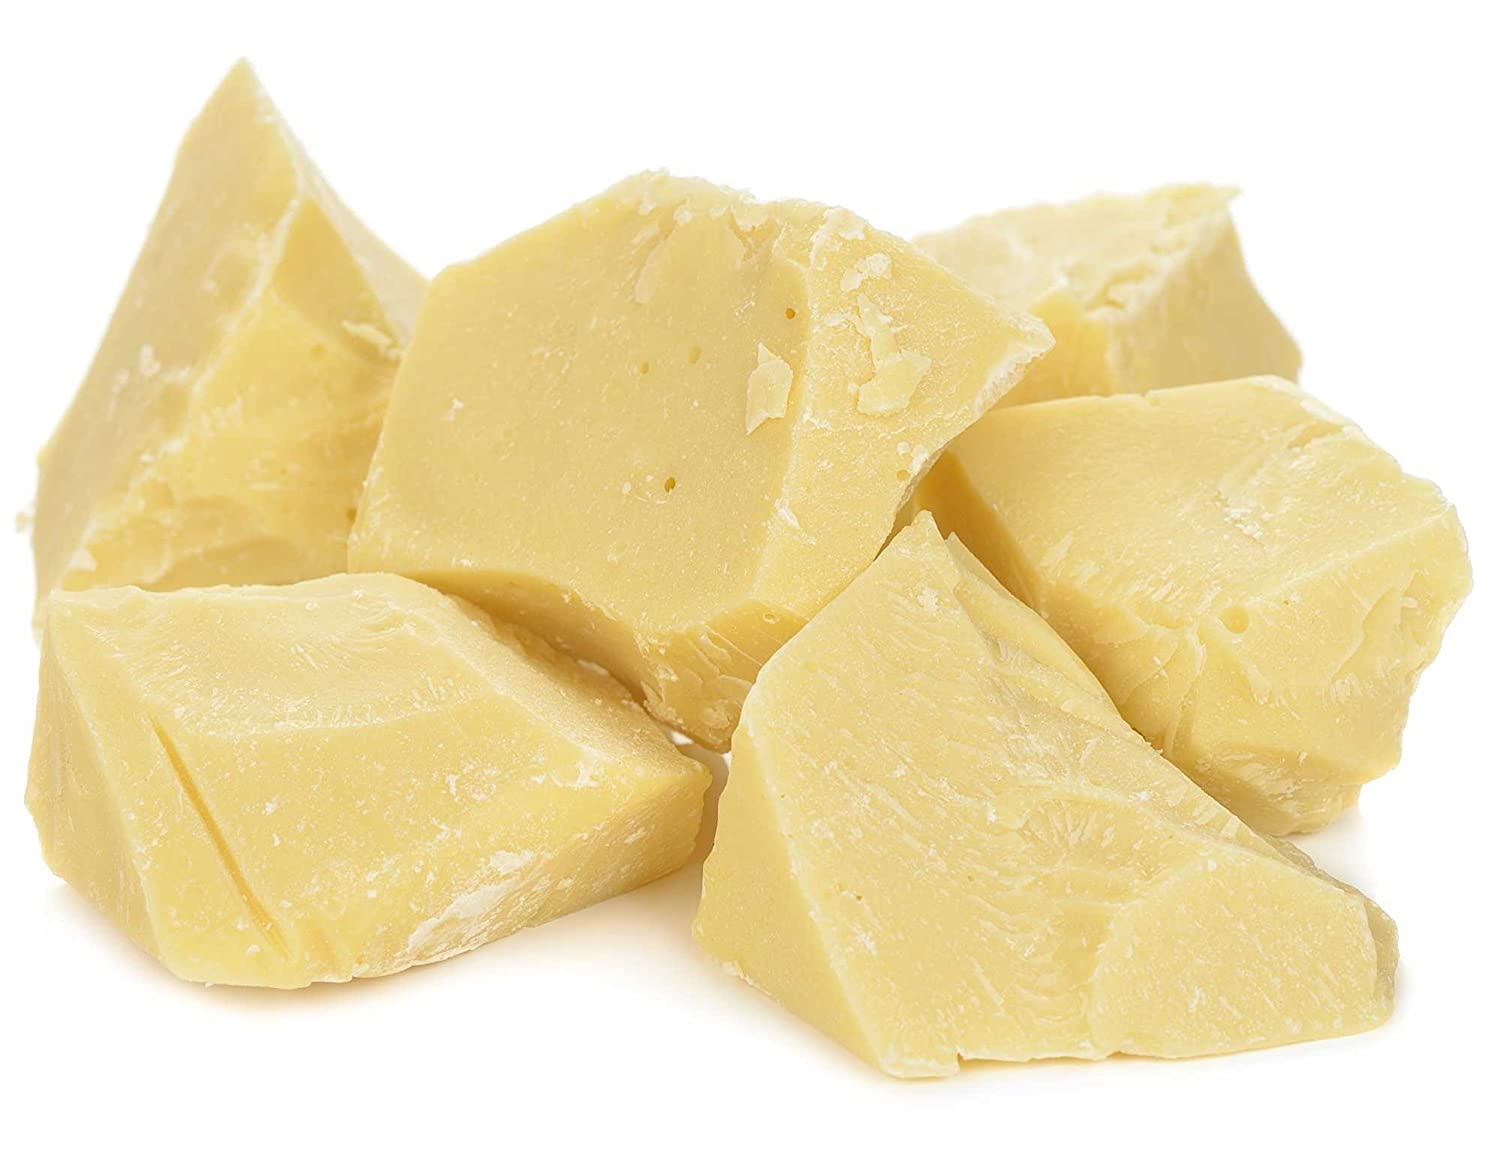 Raw Organic Cocoa Butter Chunks by Its Delish, 2 lbs (32 Oz) Bulk | 100% Natural Cocoa Butter for Soap and Chocolate Making